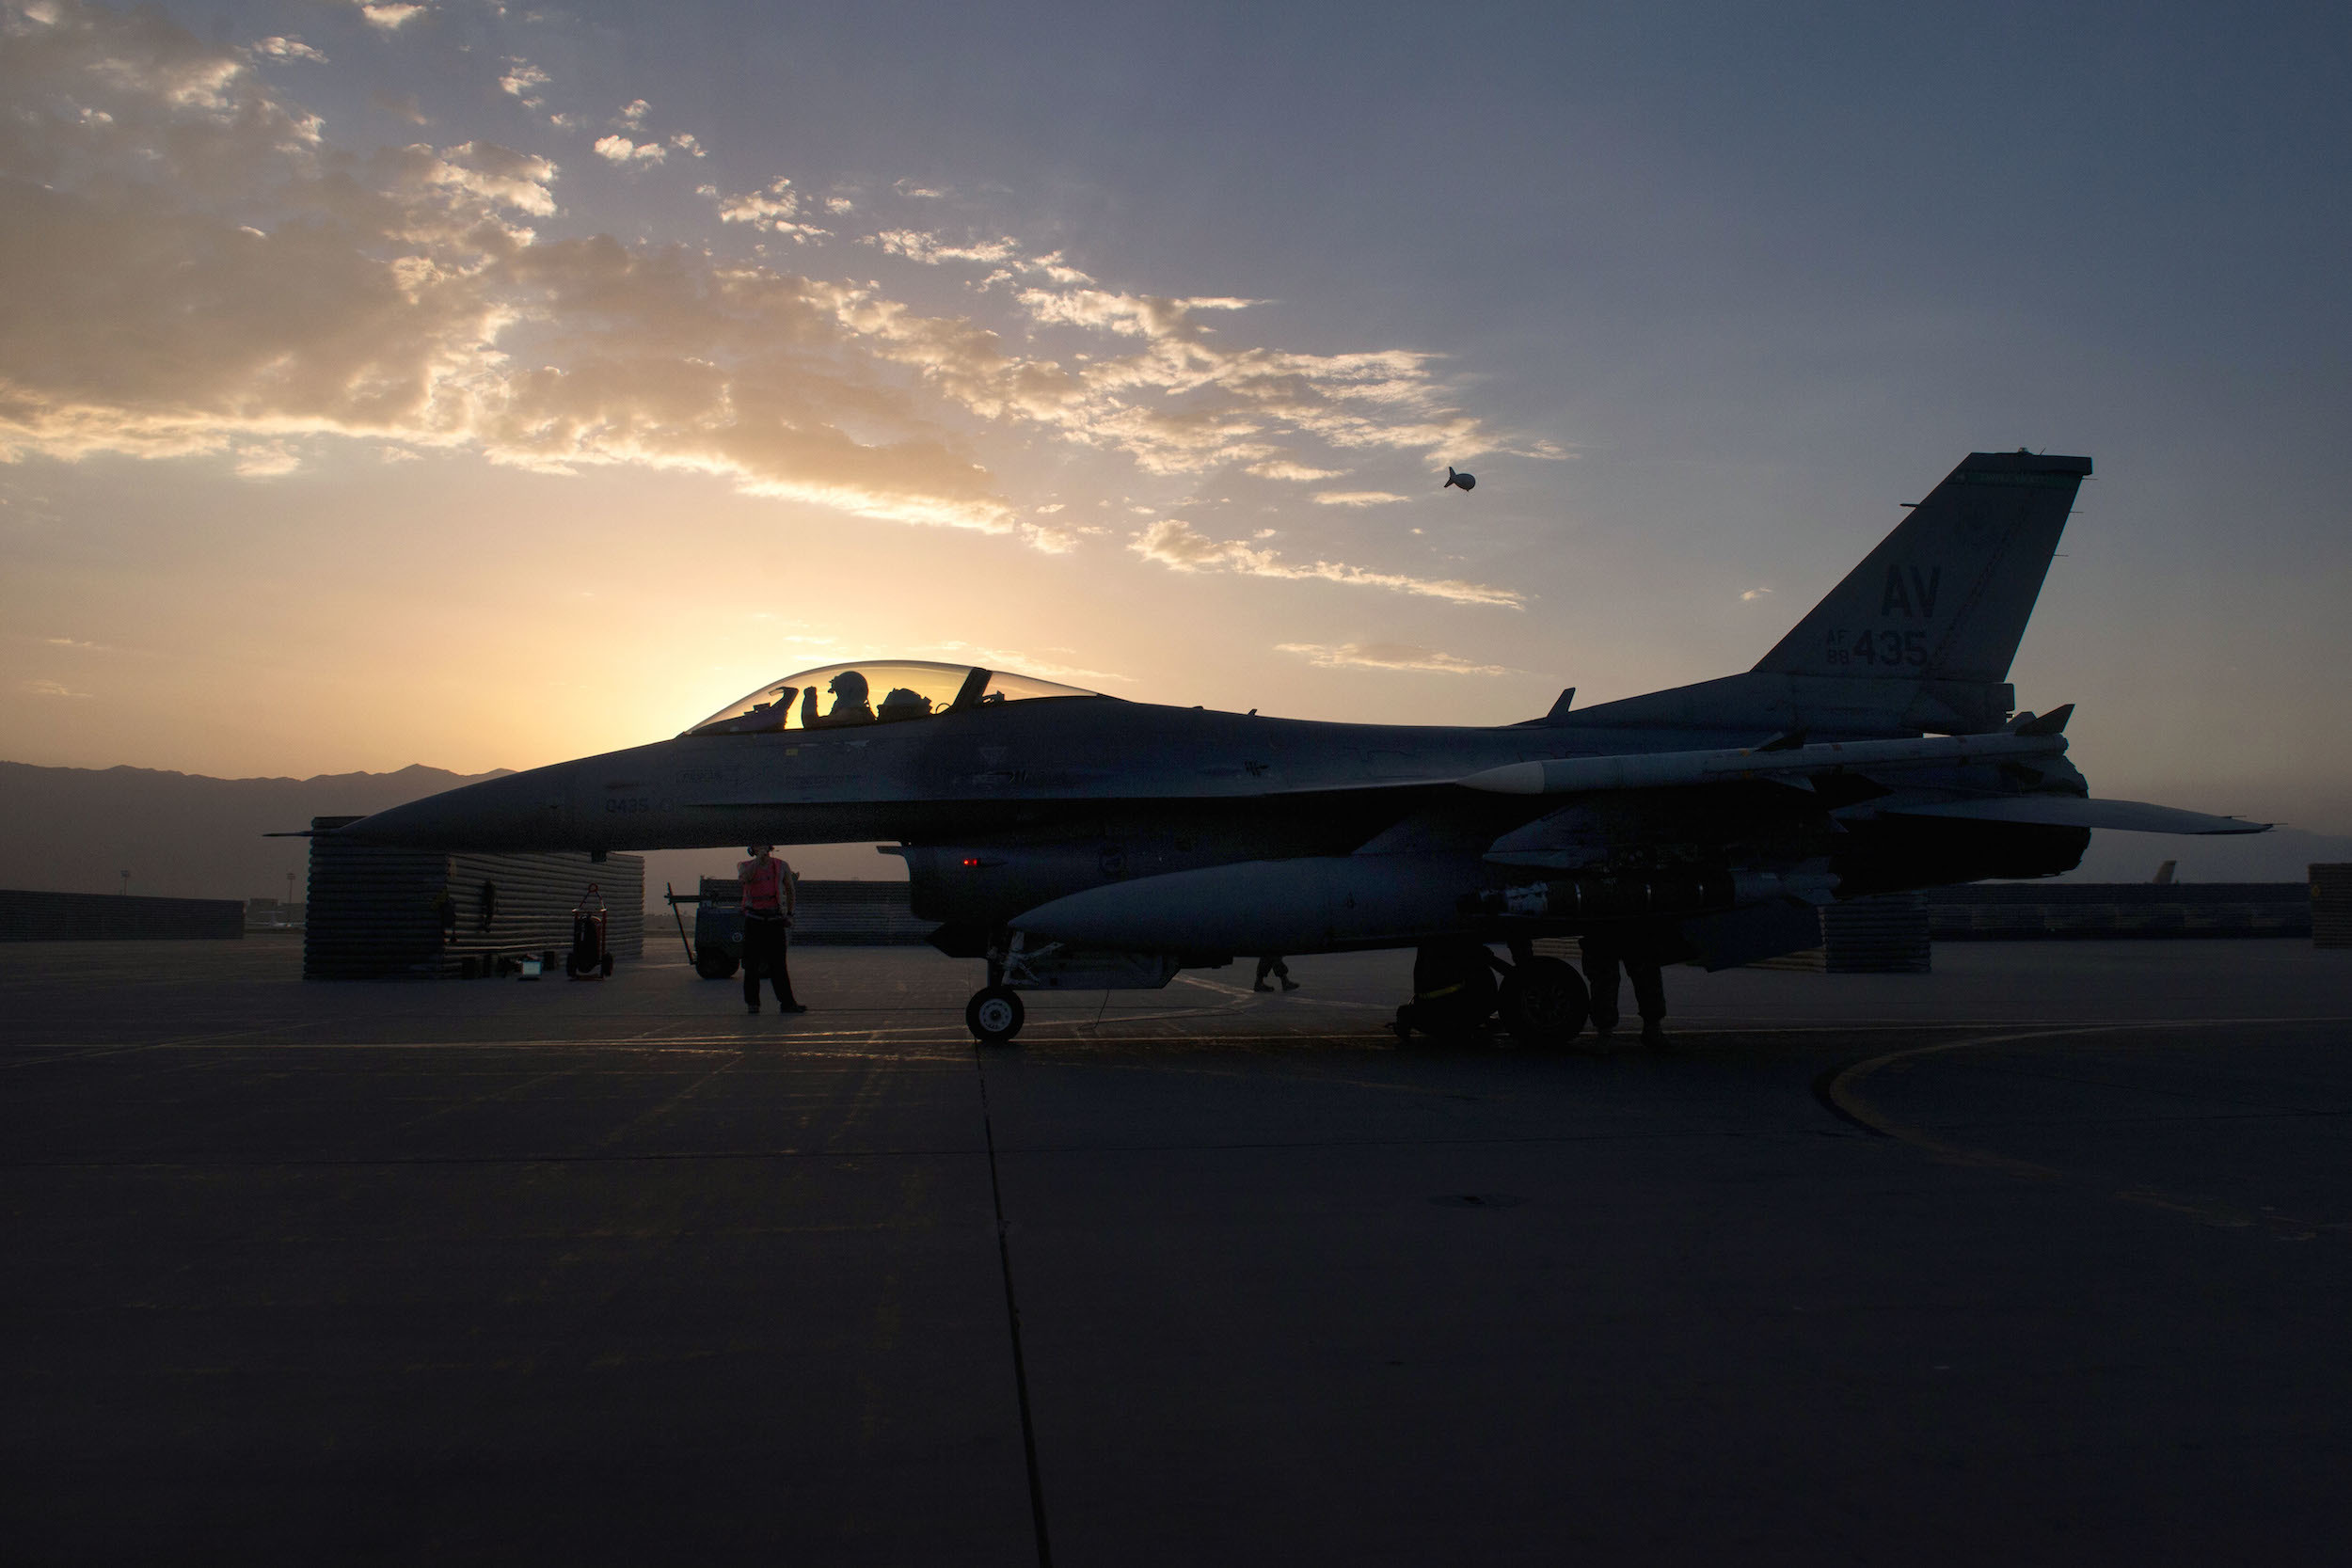 U.S. Airmen from the 455th Expeditionary Aircraft Maintenance Squadron's weapons flight prepare to complete a final check of the weapons on an F-16 Fighting Falcon aircraft before it takes off on a combat sortie from Bagram Air Field, Afghanistan, July 14, 2015. The F-16 is a multi-role fighter aircraft that is highly maneuverable and has proven itself in air-to-air and air-to-ground combat. Members of the Triple Nickel are deployed in support of Operation Freedom's Sentinel and NATO's Resolute Support mission. (U.S. Air Force photo by Tech. Sgt. Joseph Swafford/Released)